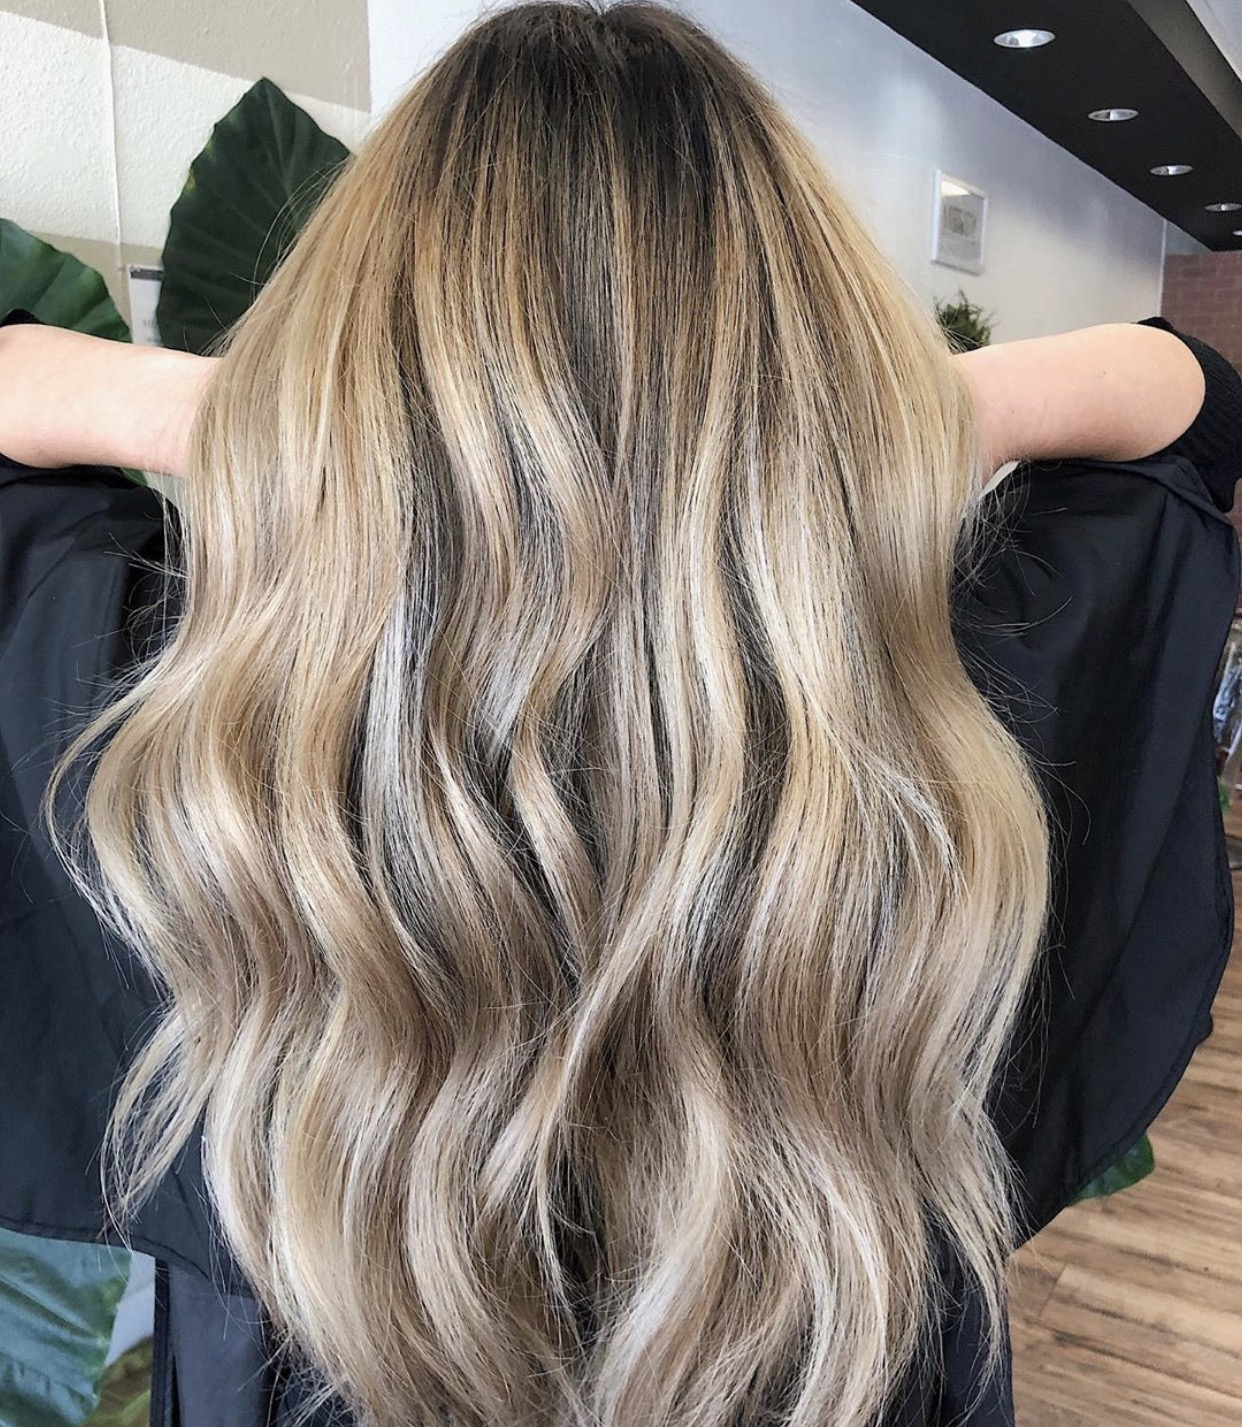 Beauty Hair Salon Near Me Palmdale Ca